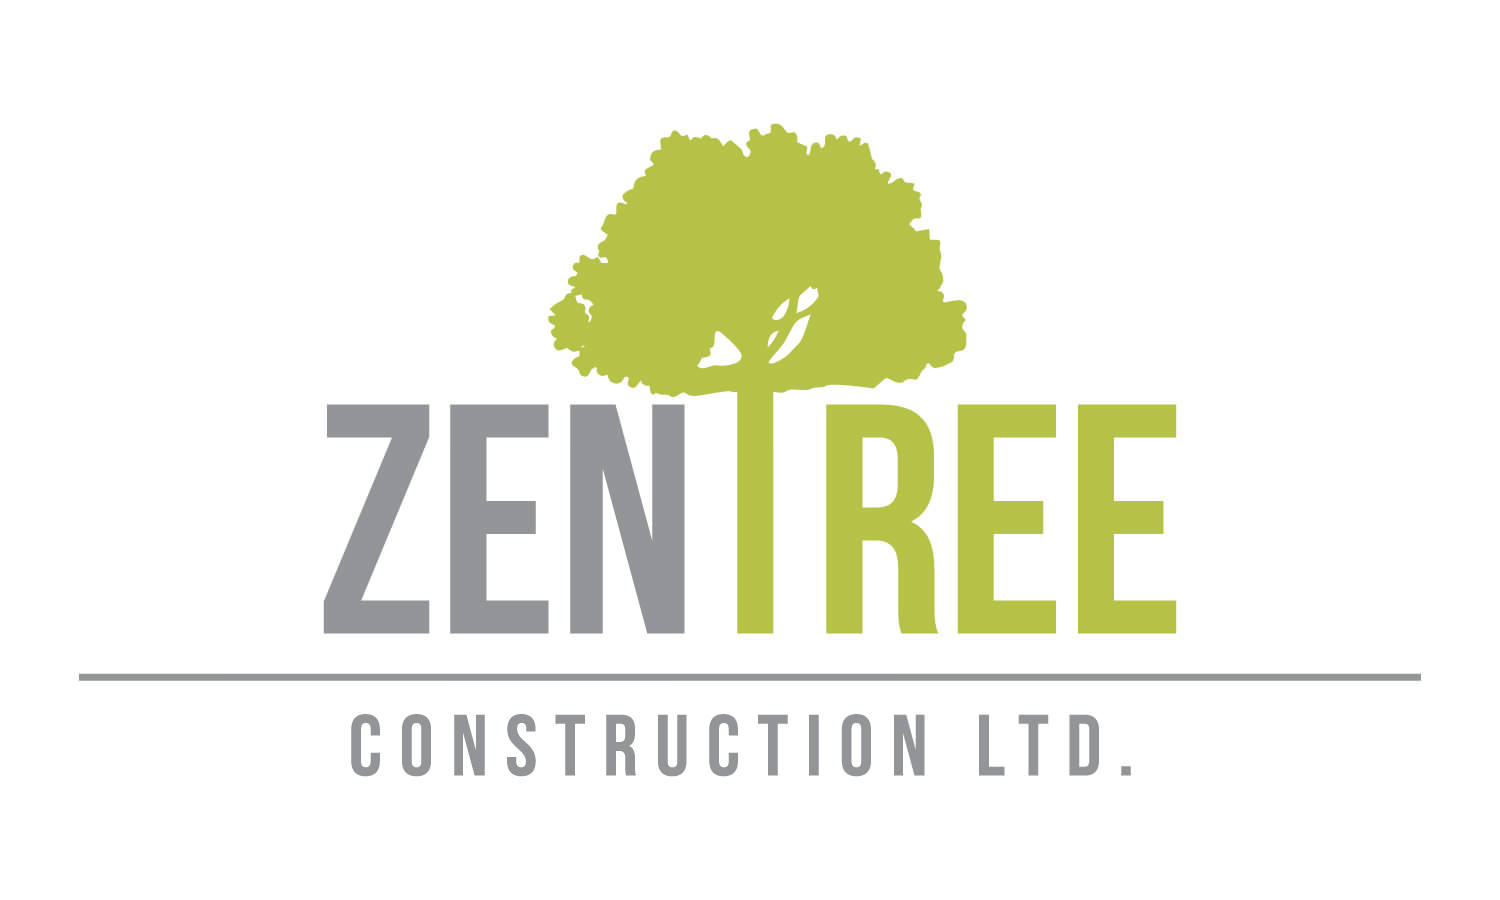 ZenTree Construction Ltd. - Ottawa Based Renovation Services